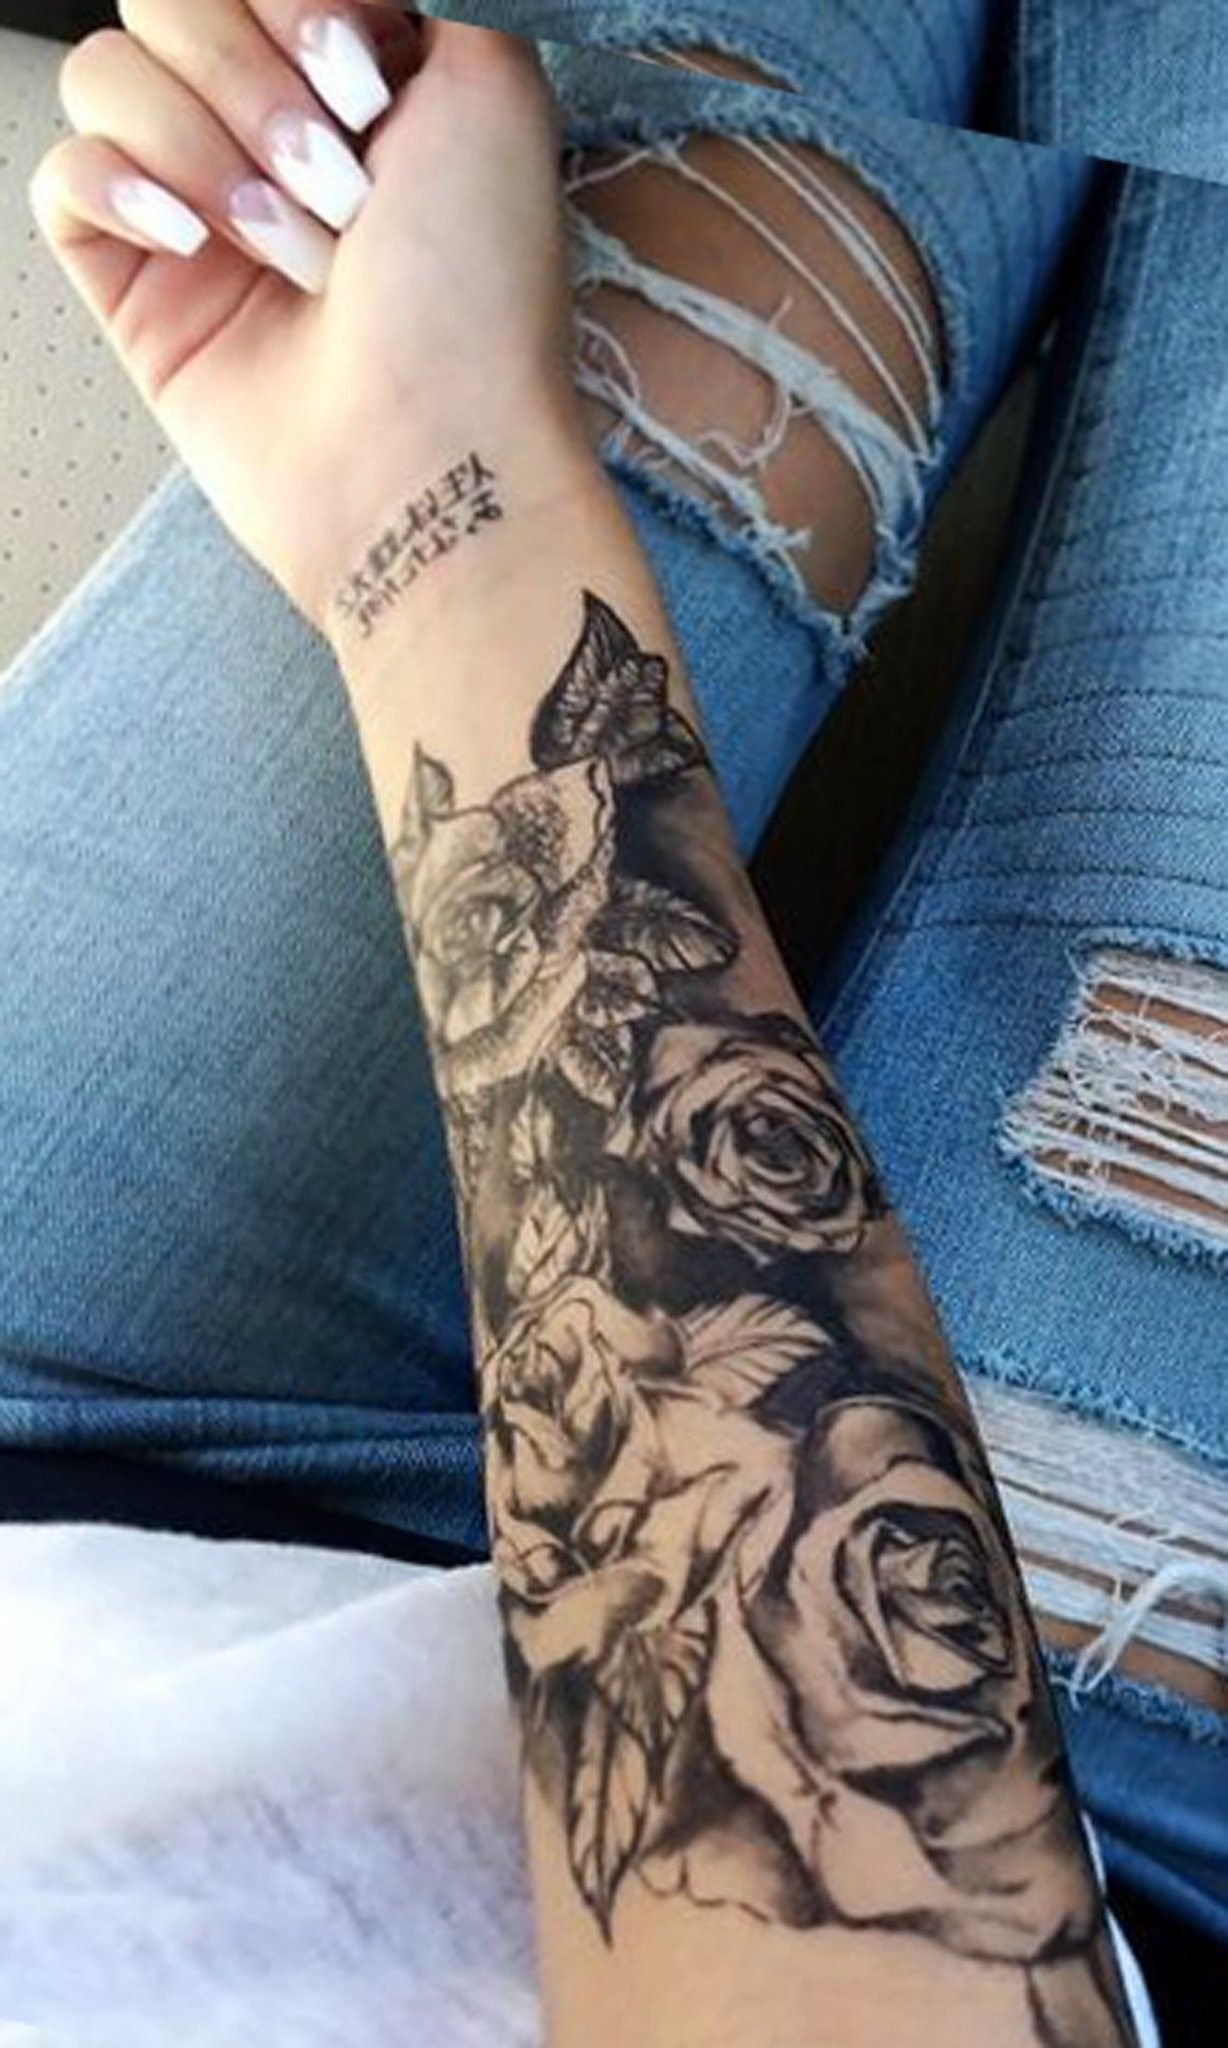 90 coolest forearm tattoos designs for men and women you